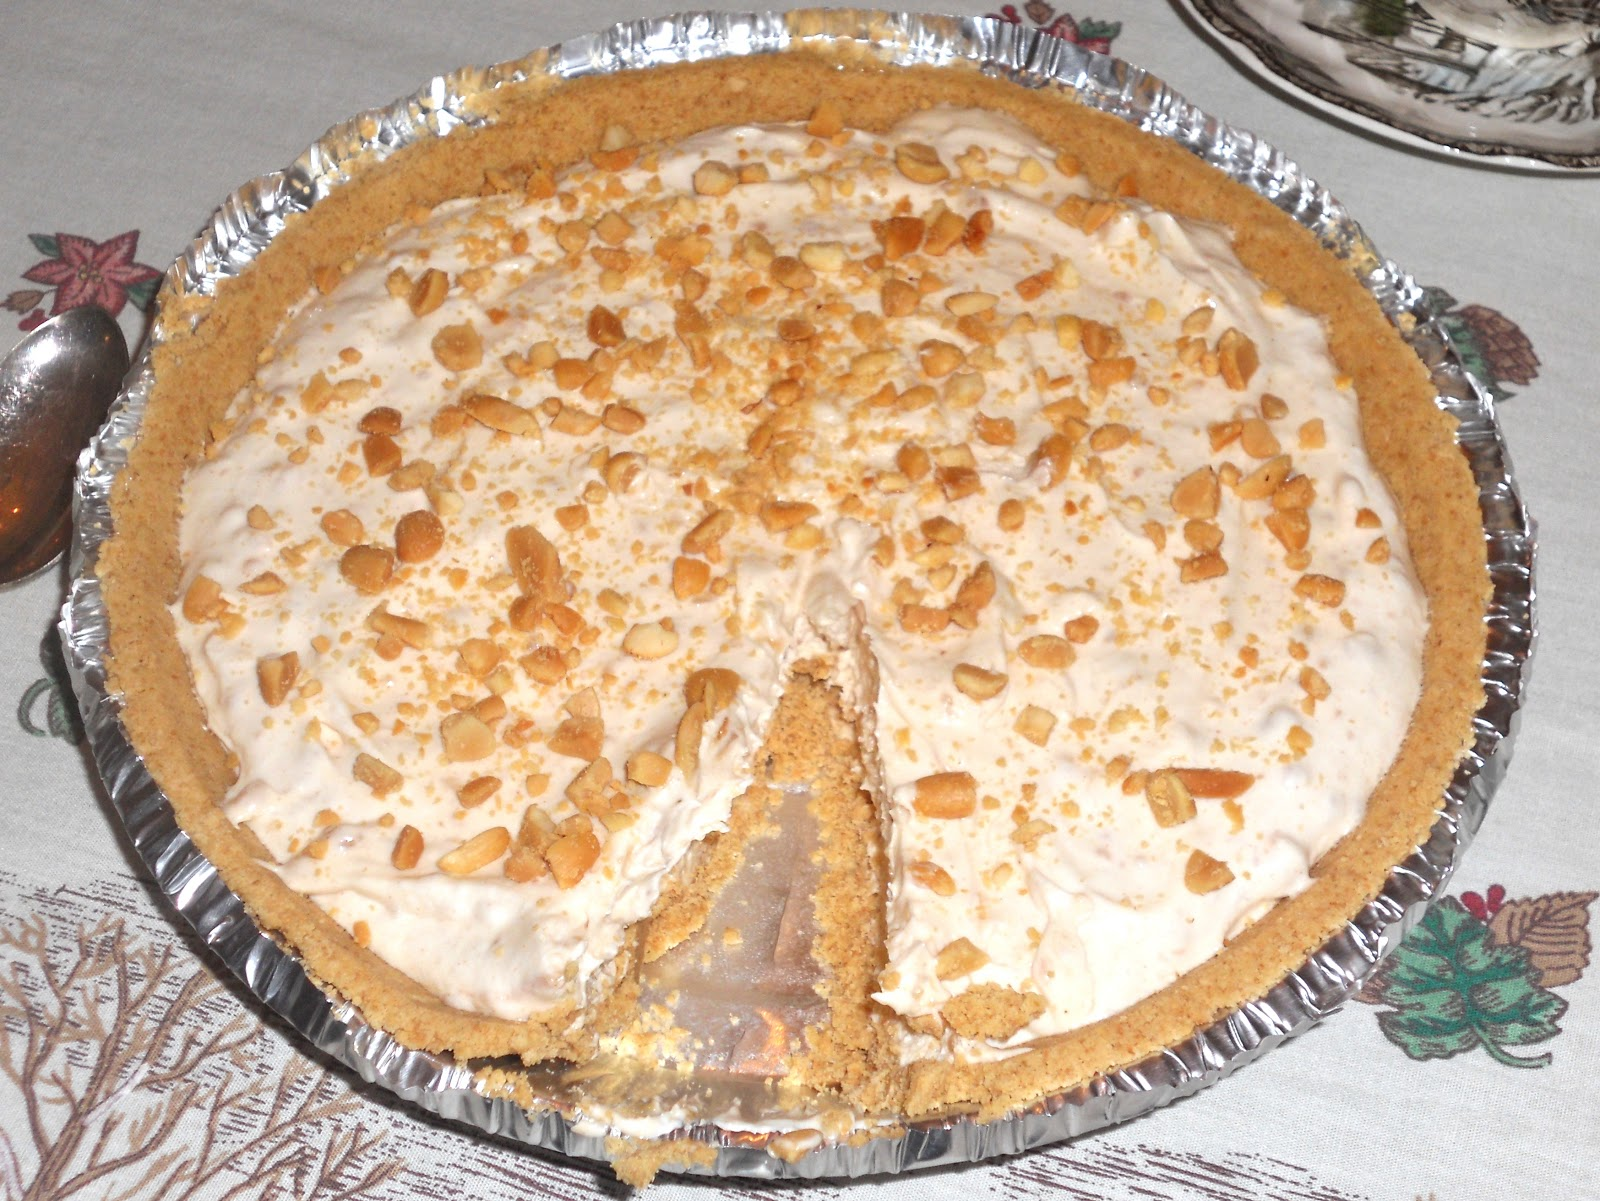 ... , Pies, & Preschool Pizzazz: Friday Pie-Day: Peanut Butter Pie